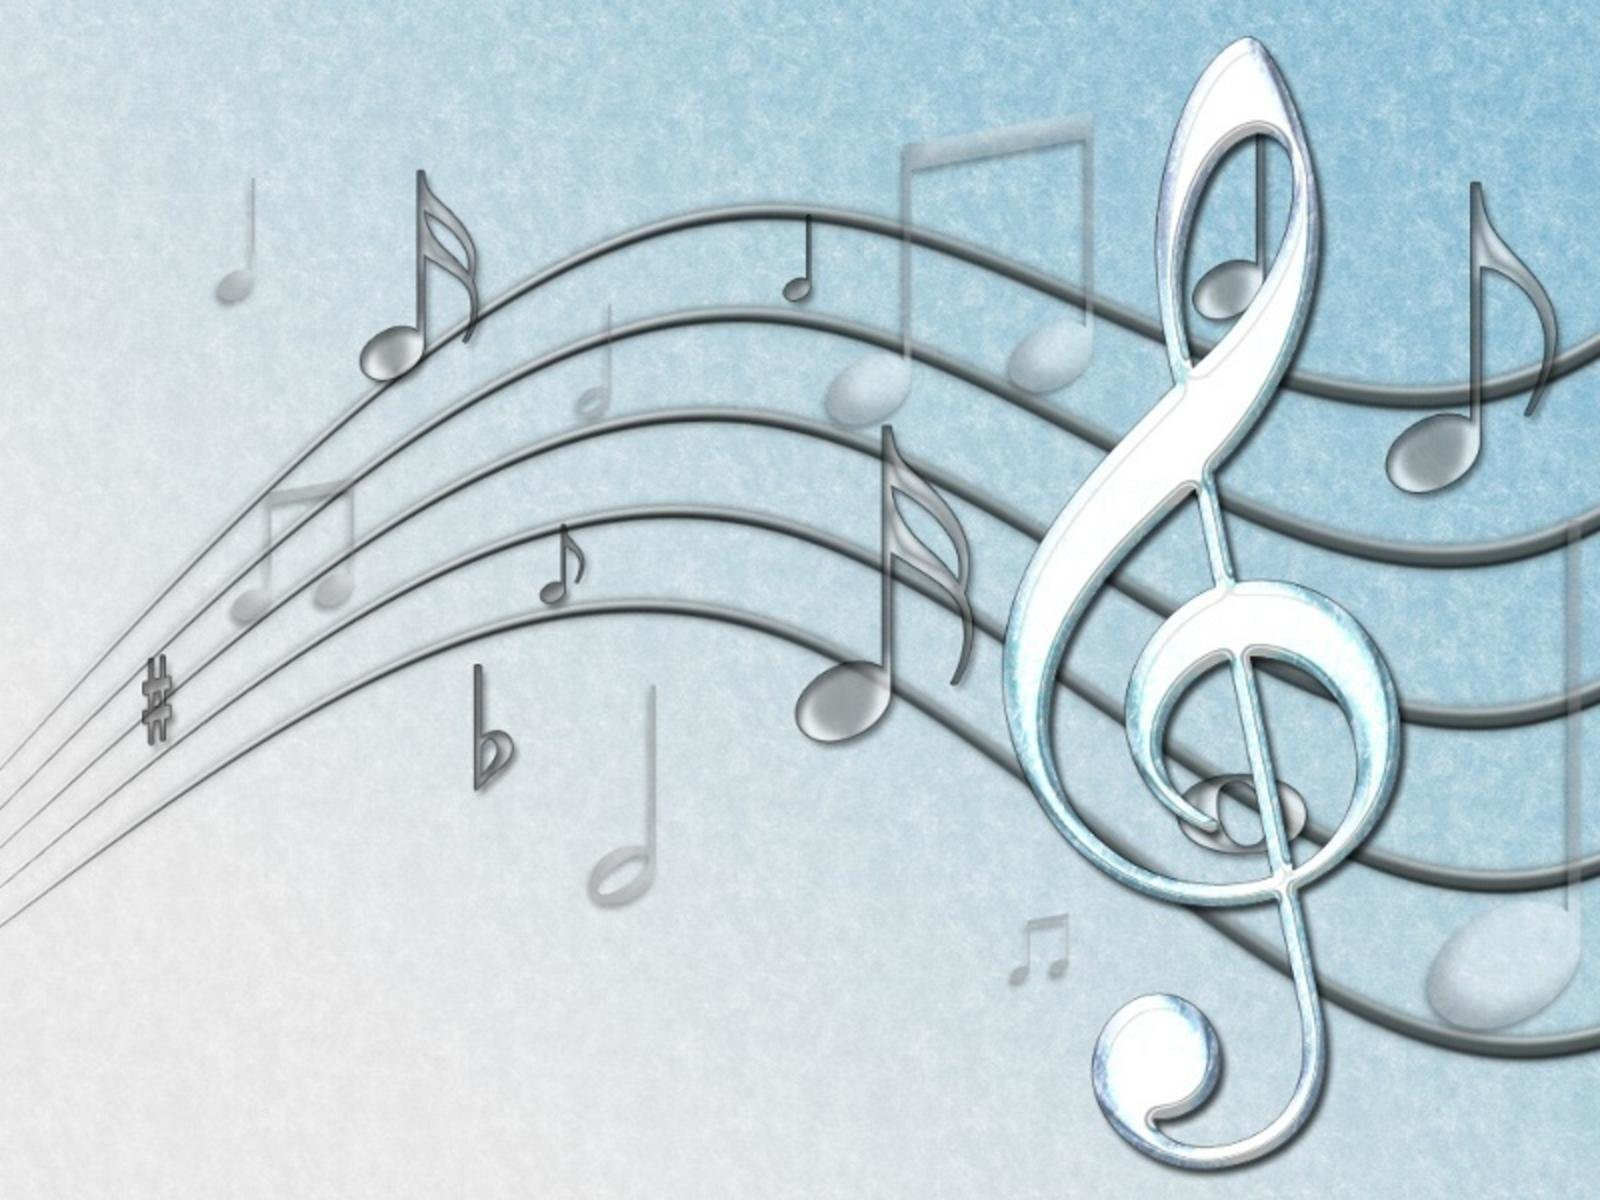 Musical Notes Wallpapers Hd For Desktop Backgrounds